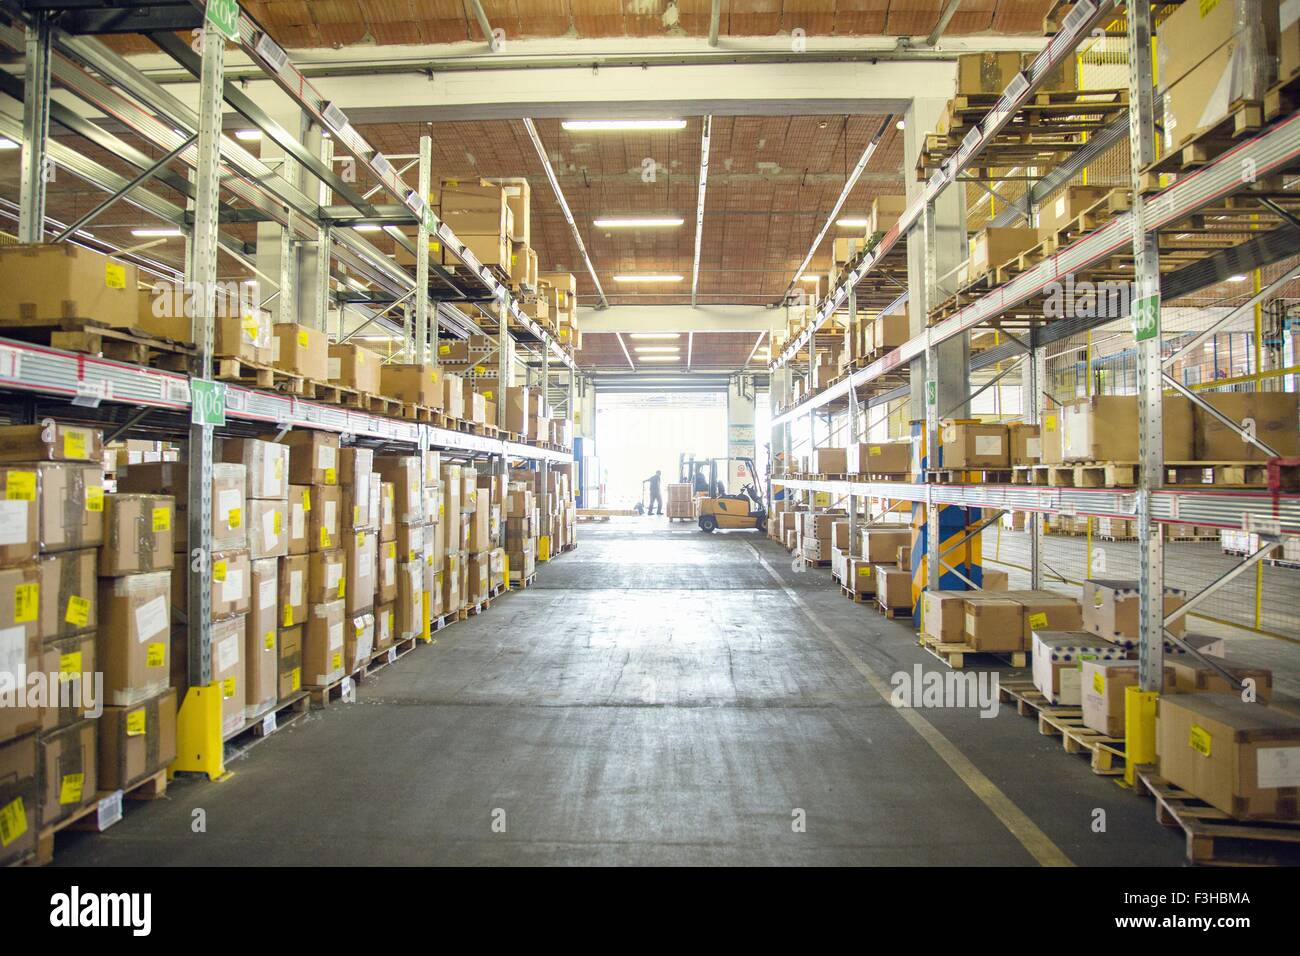 Forklift trucks and drivers working in distribution warehouse aisle - Stock Image